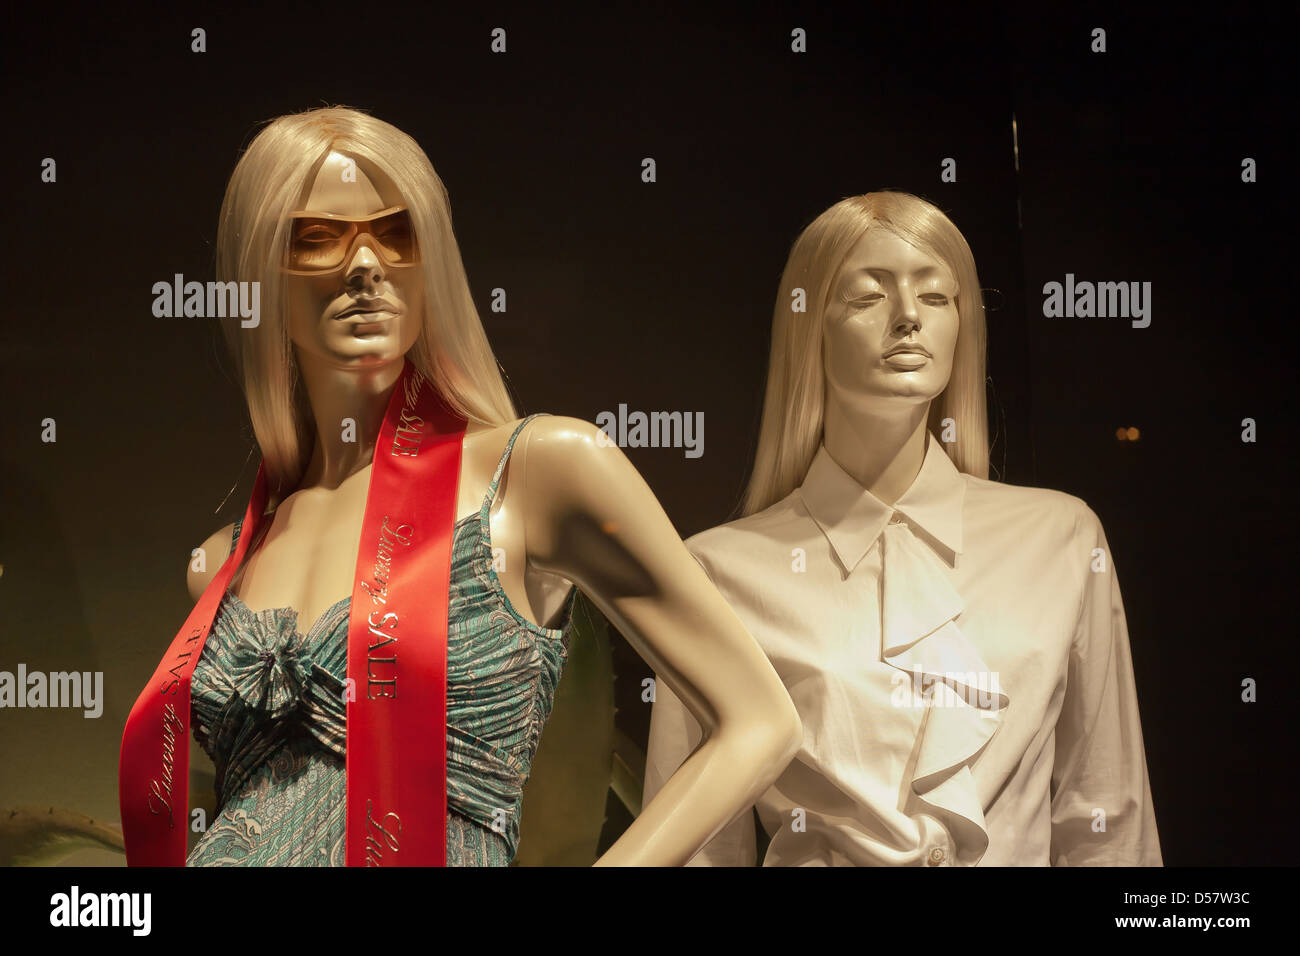 Poznan, Poland, mannequins advertise for luxurious ladies fashion - Stock Image